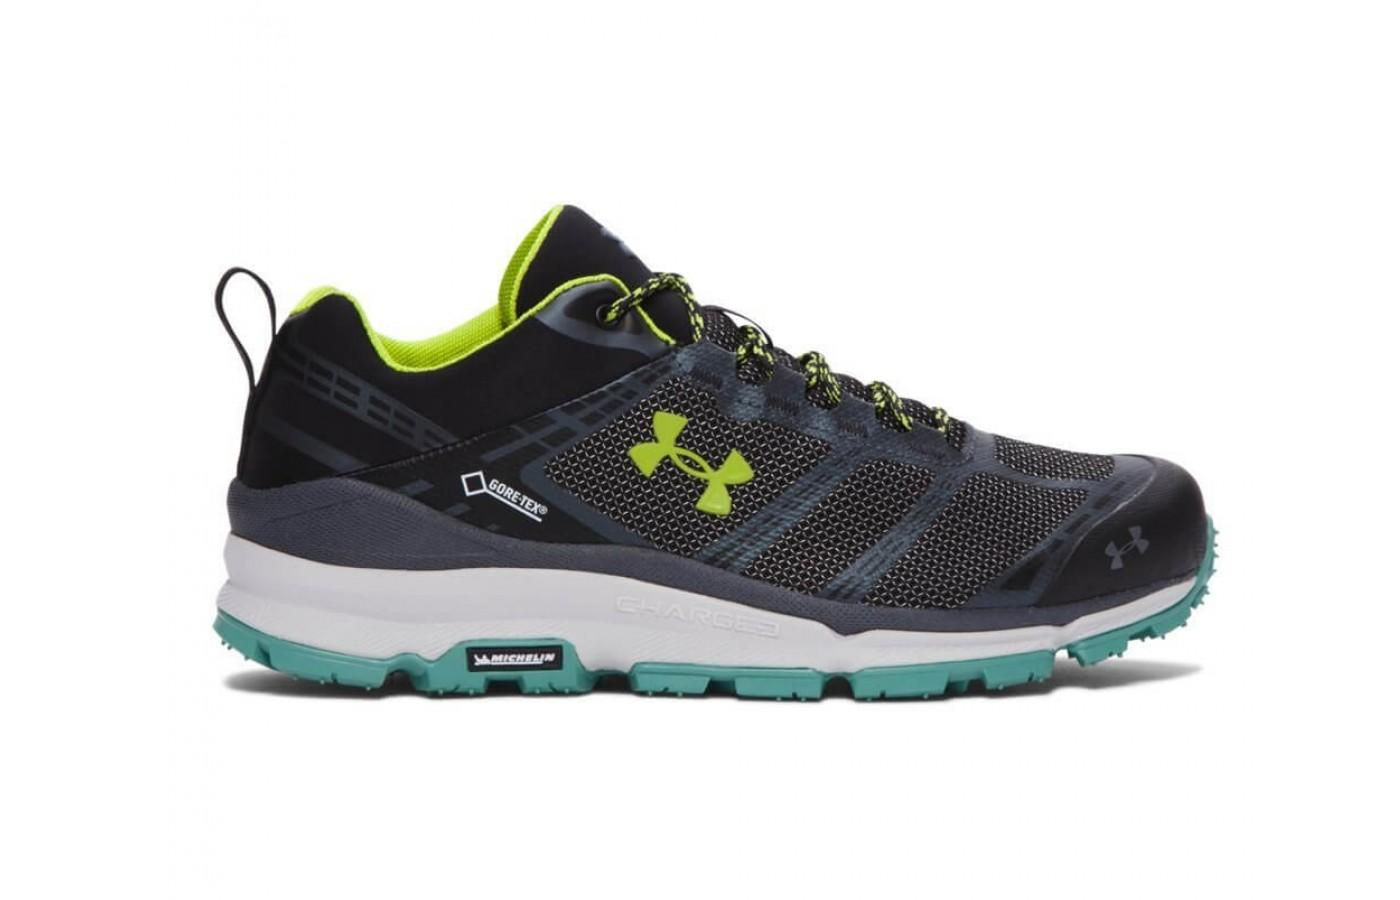 Under Armour Verge Low GTX right to left view